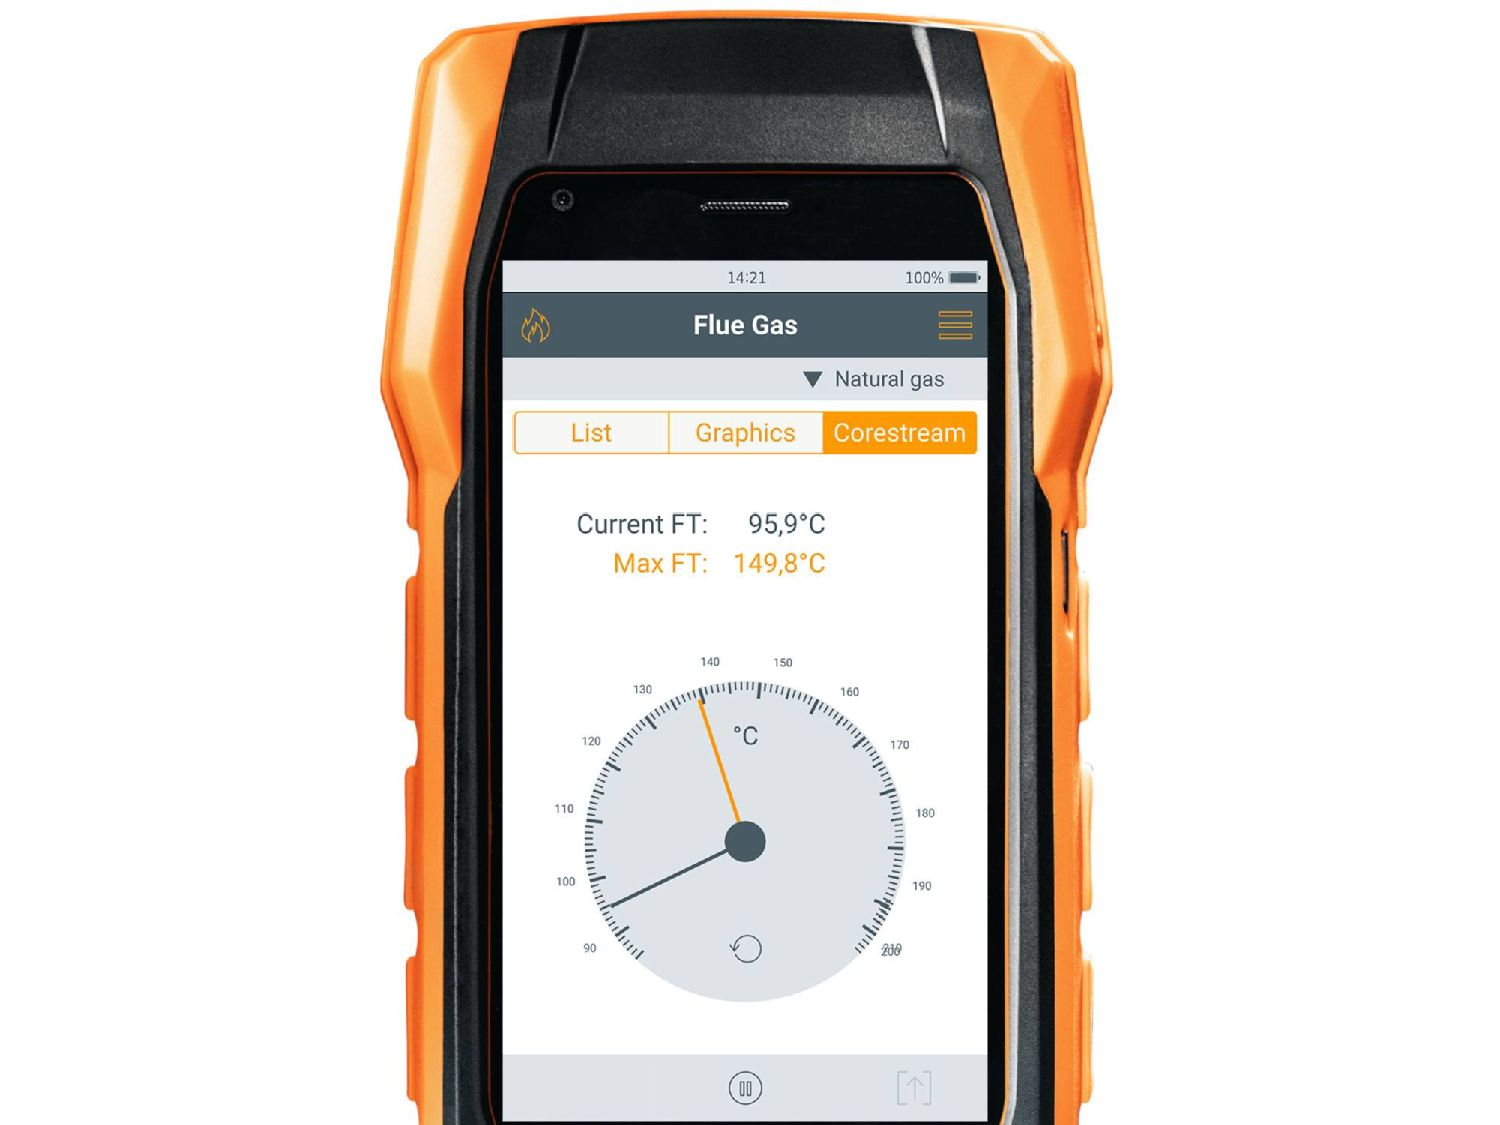 Flux central - analyseur de combustion testo 300